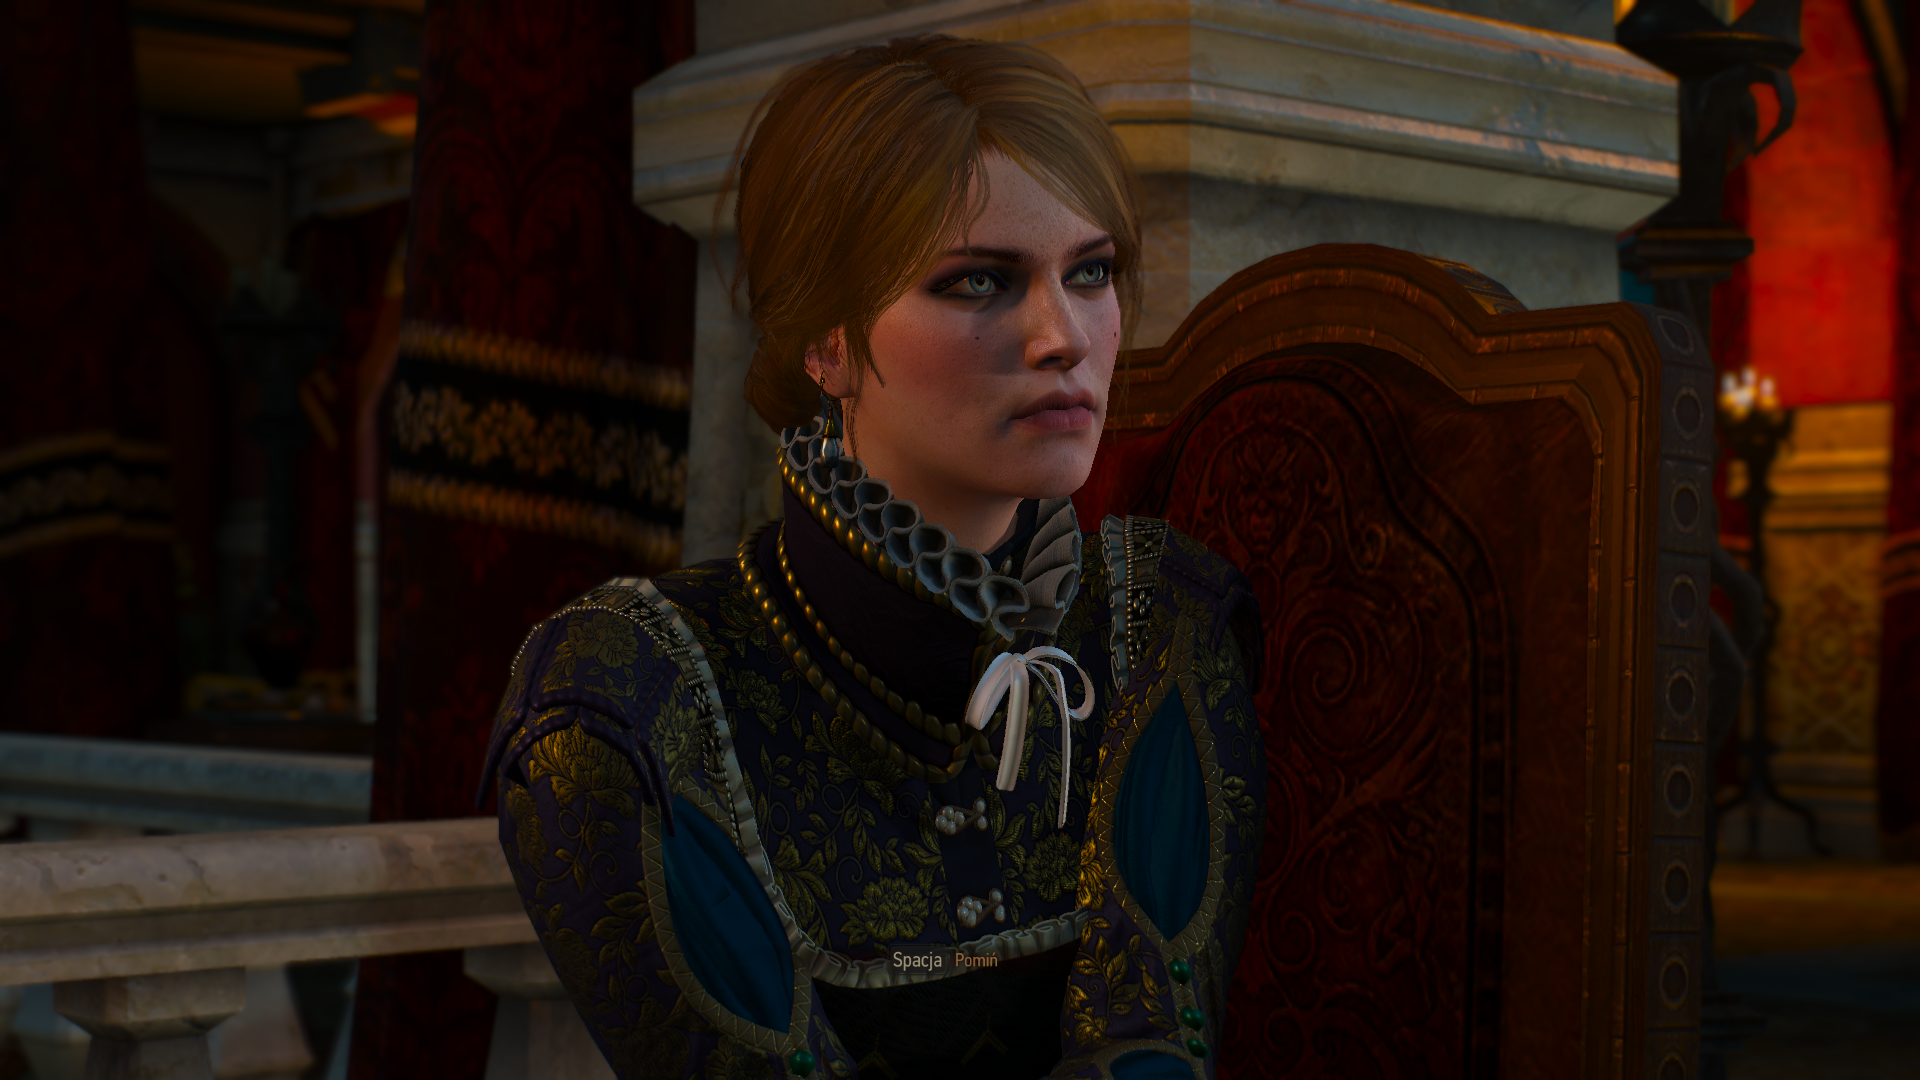 The Witcher 3 28.12.2018 01_06_31.png - Witcher 3: Wild Hunt, the